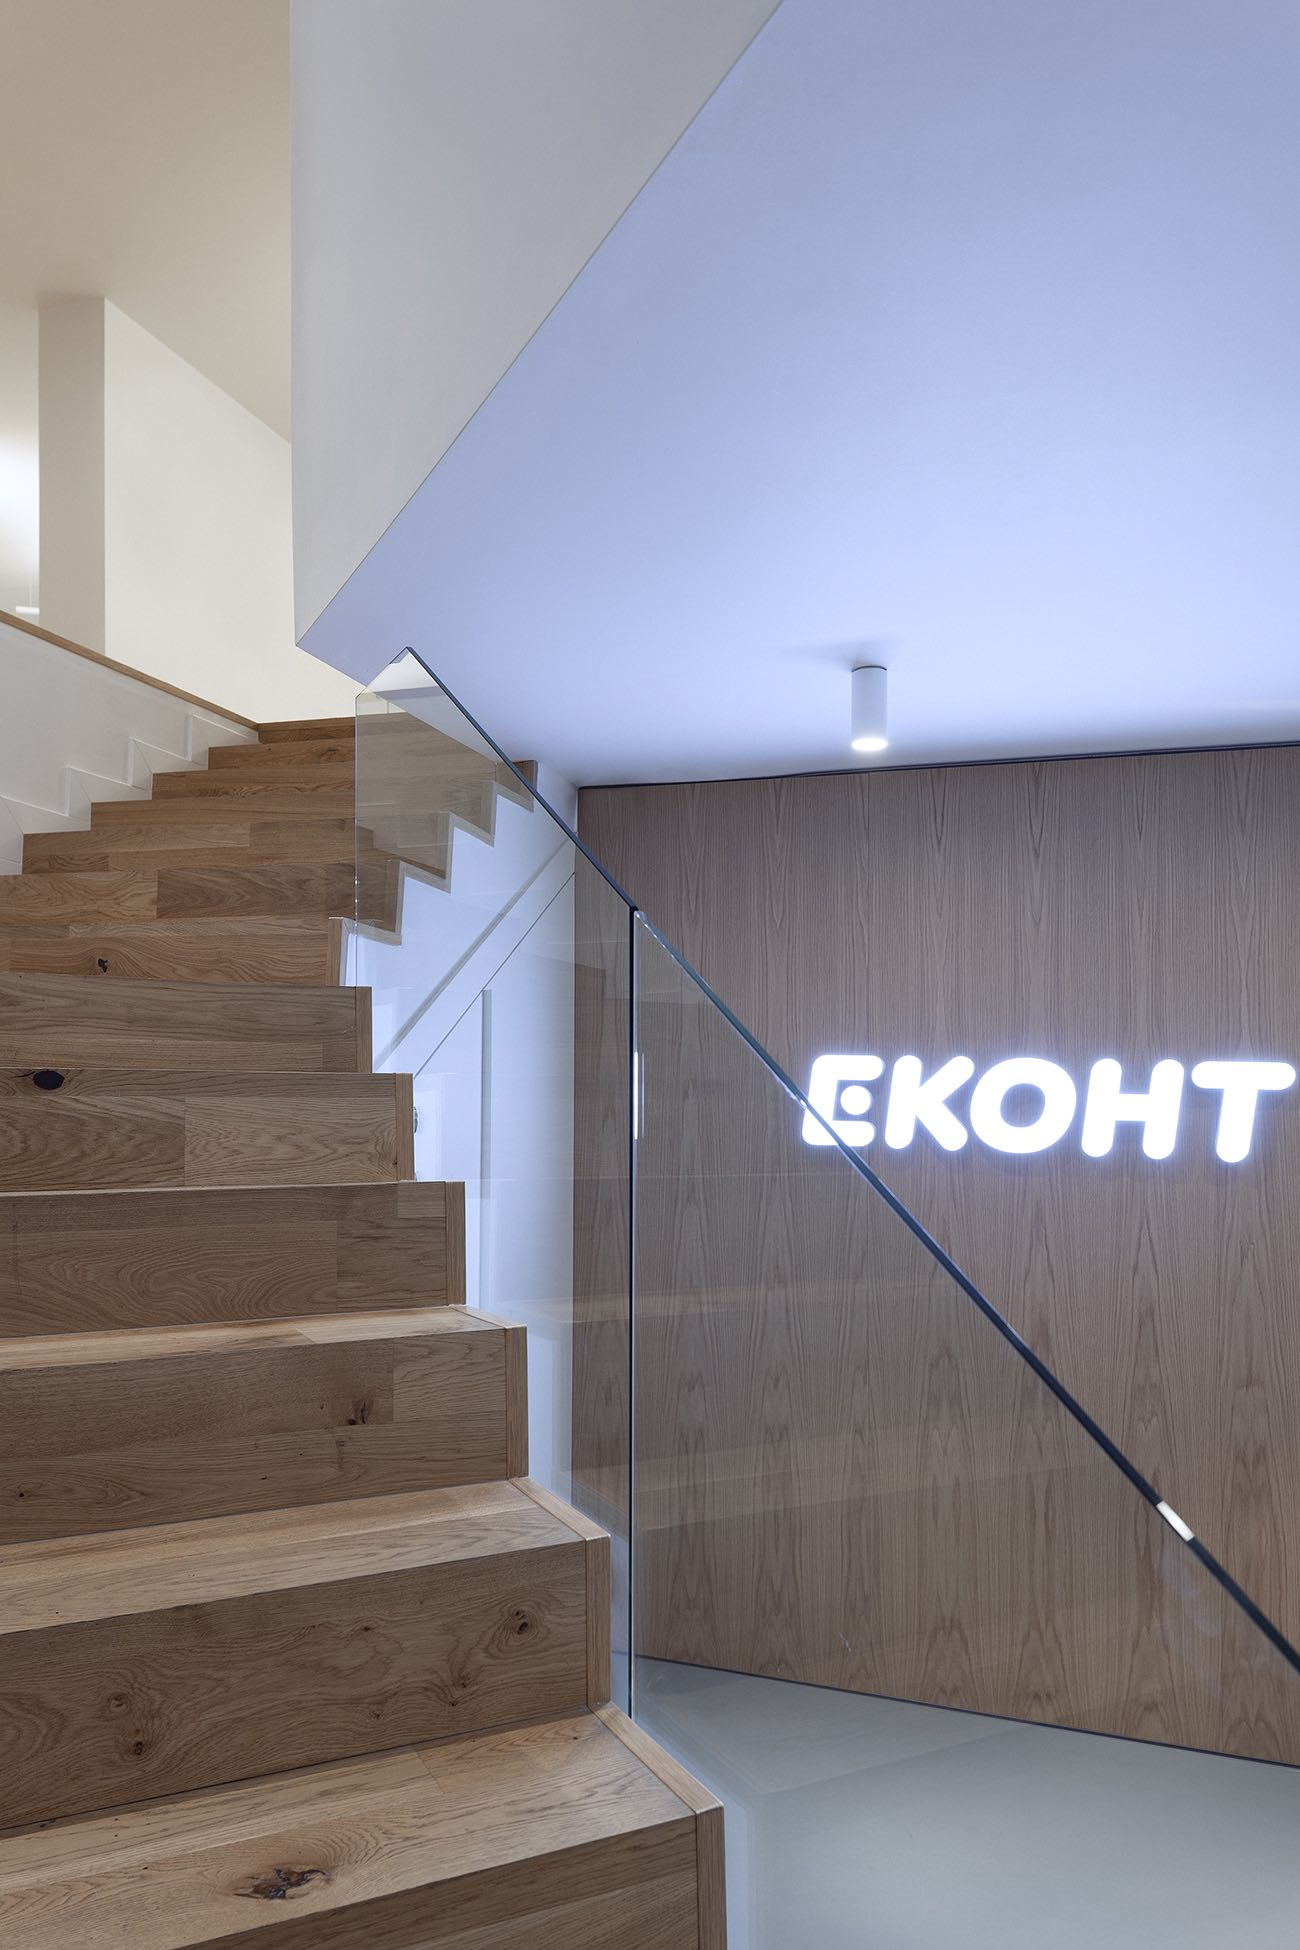 A Look Inside ECONT's New Sofia Office